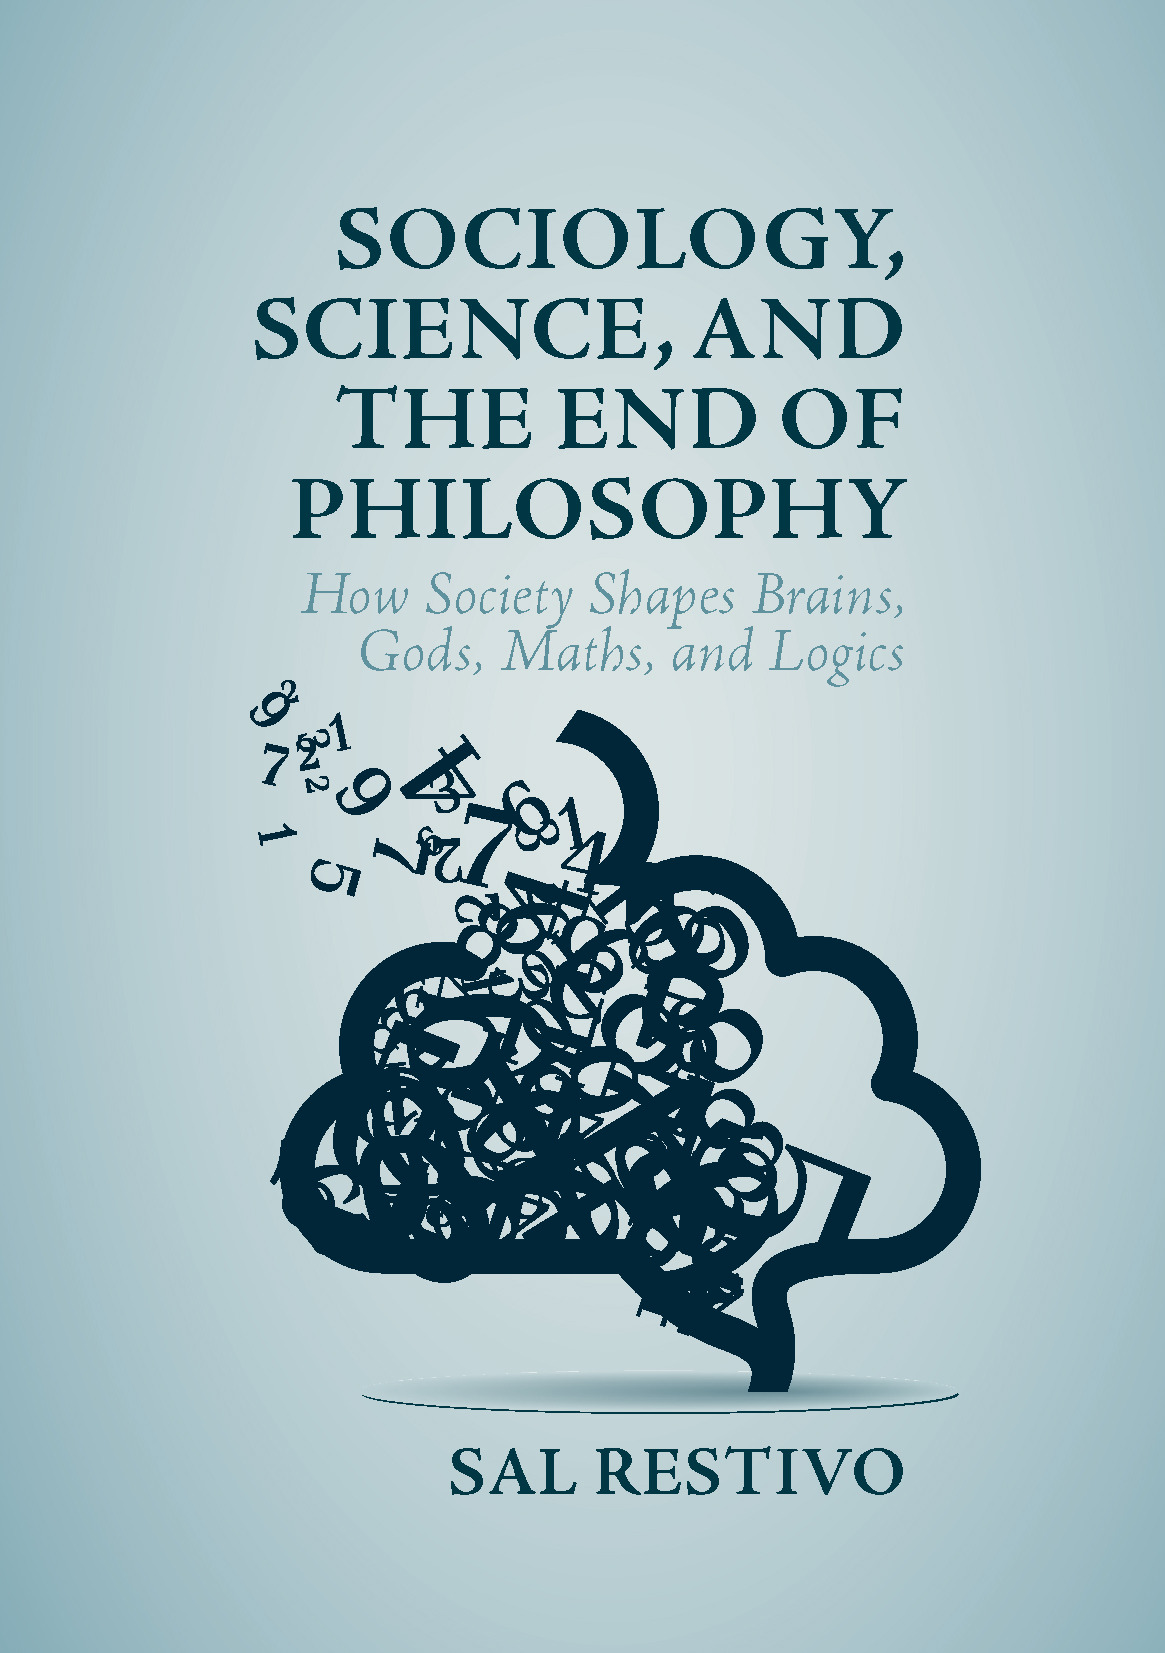 Restivo, Sal - Sociology, Science, and the End of Philosophy, ebook